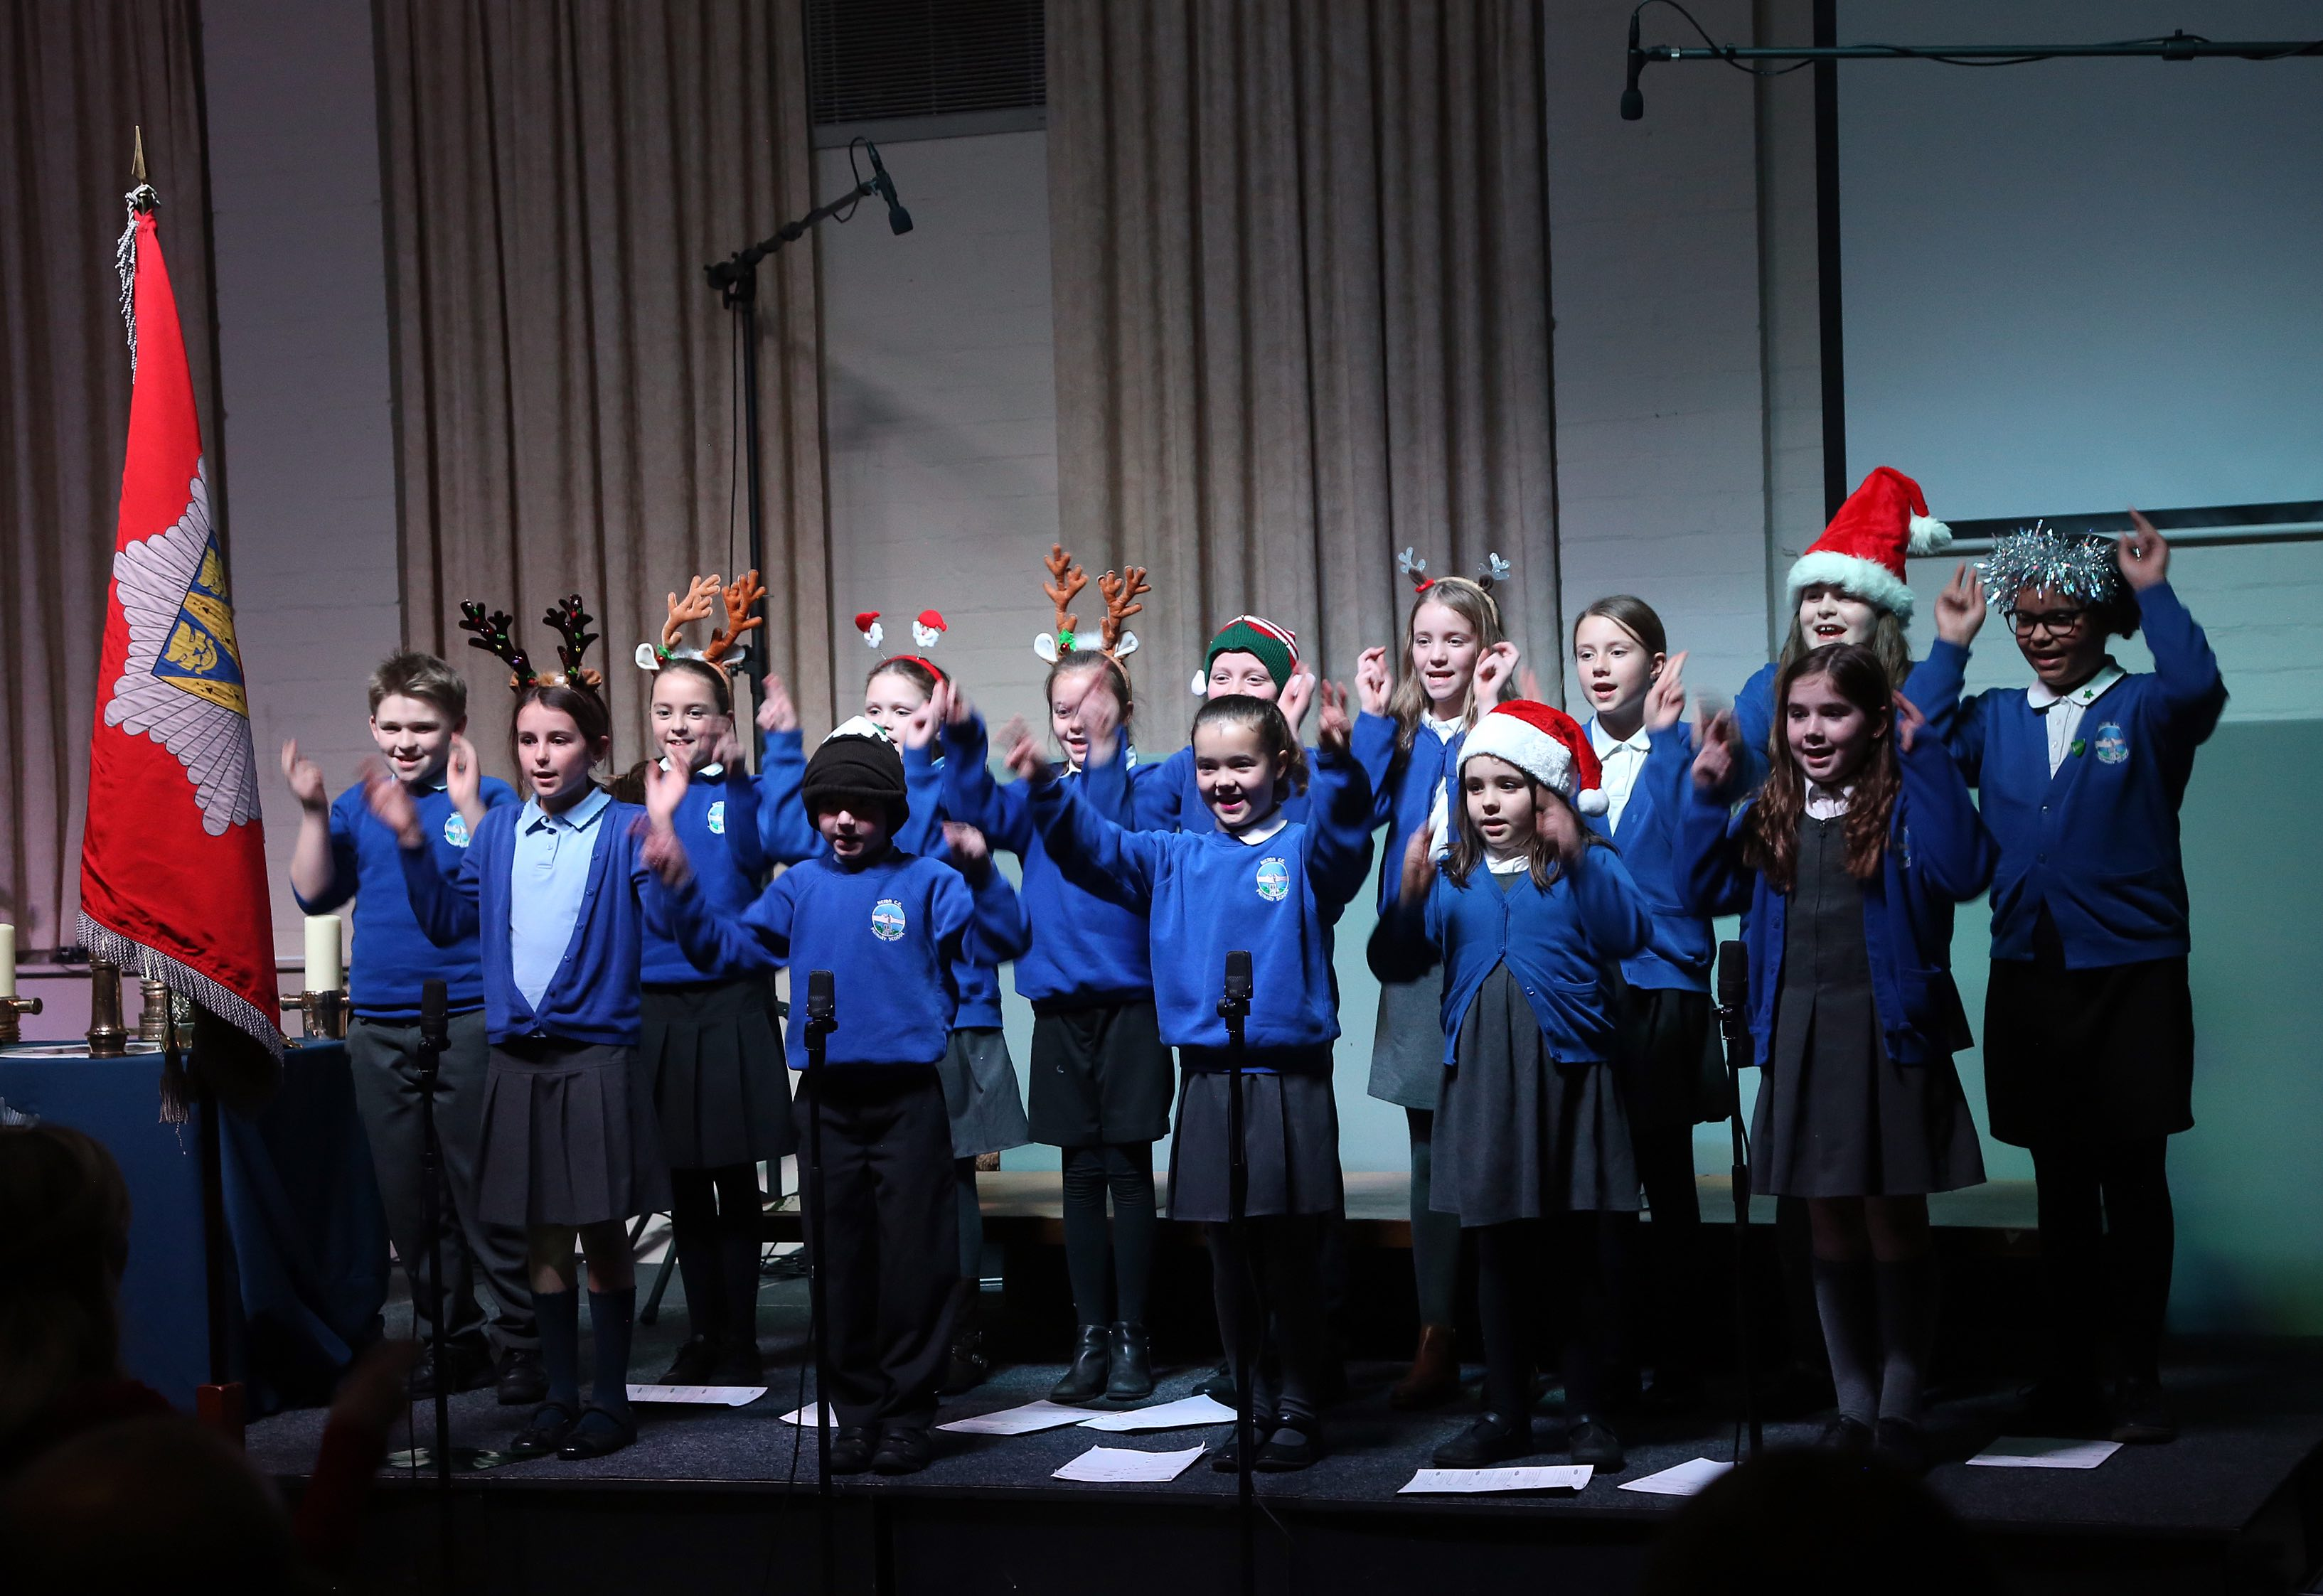 Bicton School Choir